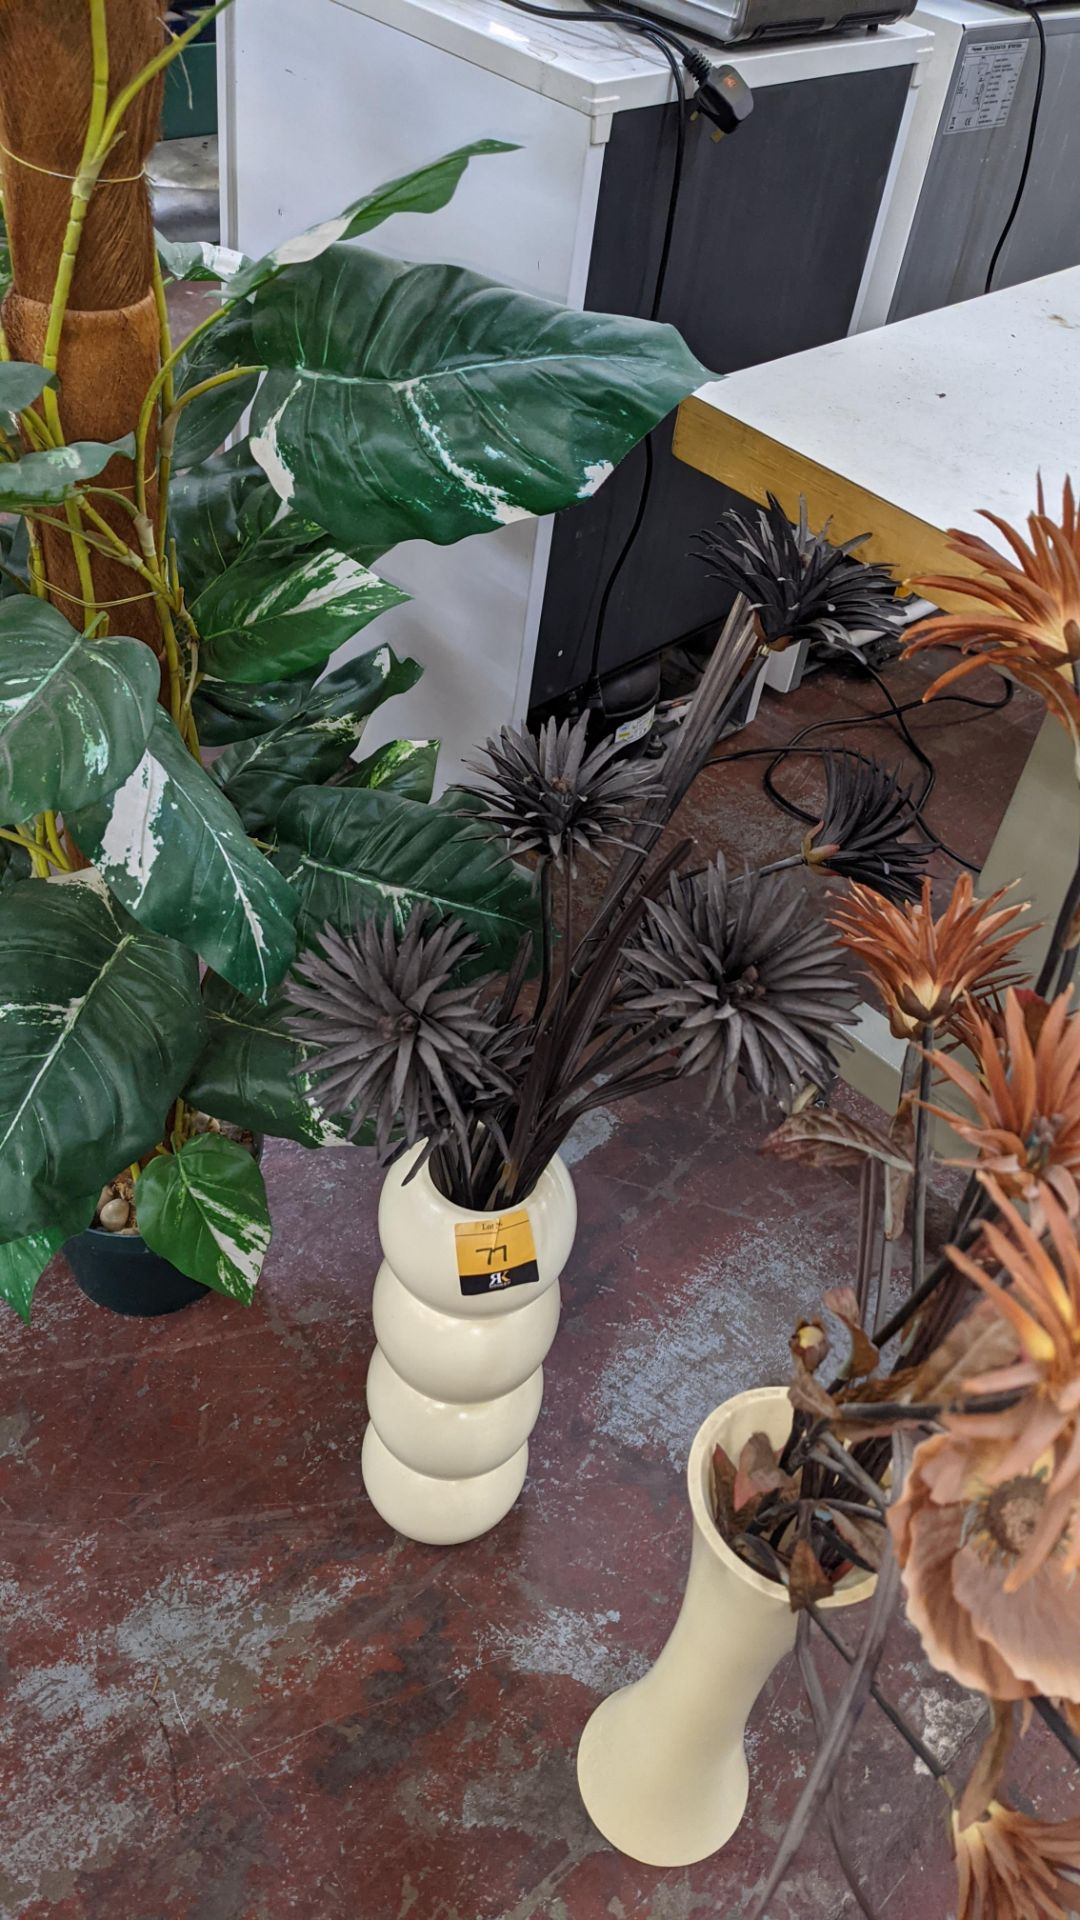 4 off artificial plant displays each including a pot - Image 4 of 8